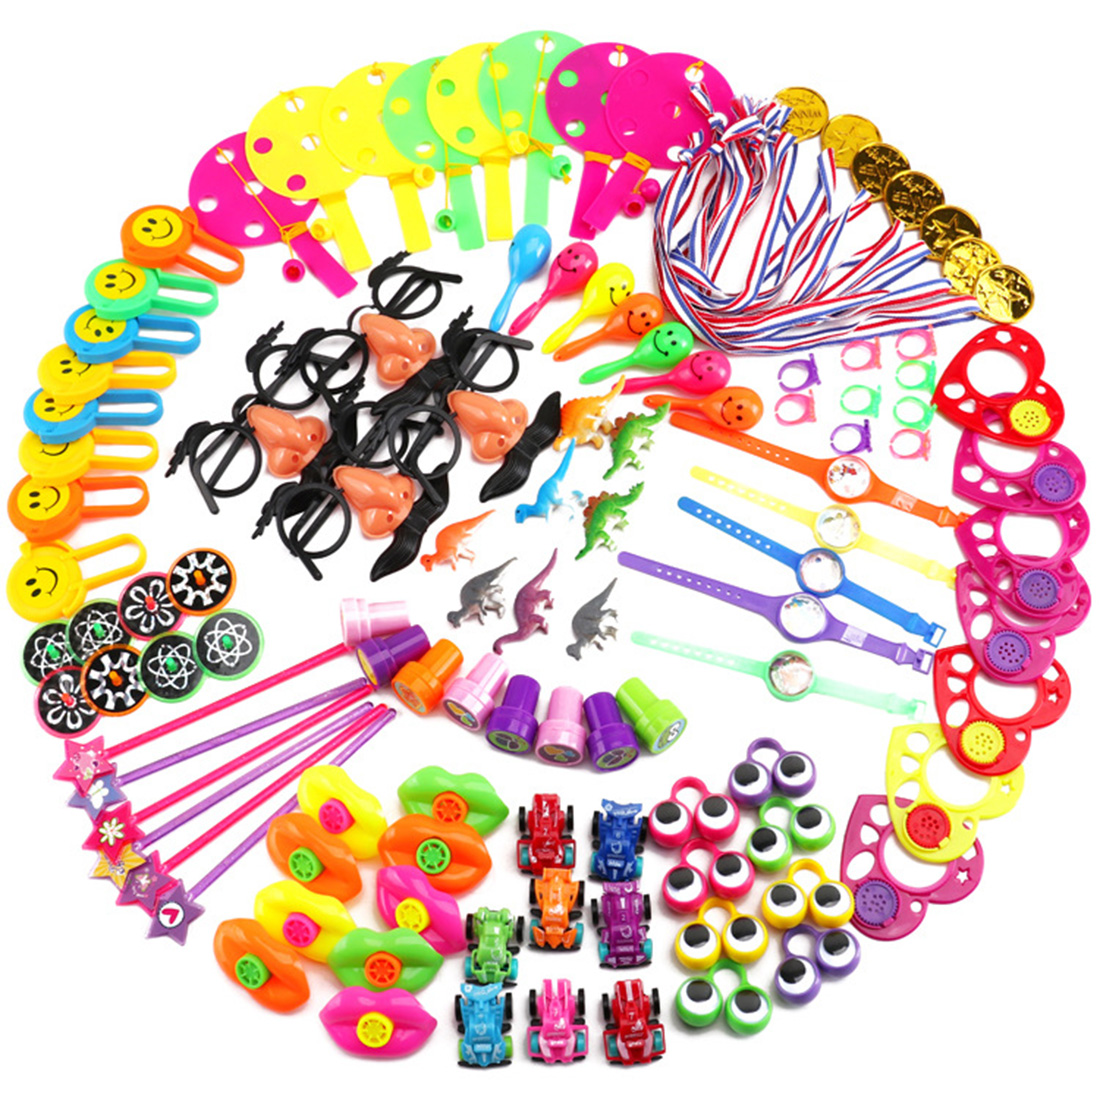 120Pcs Children Birthday Kid's Party Prizes Assorted Small Toys Set Mustache Glasses Magic Mask Medal Star Cartoon Hats